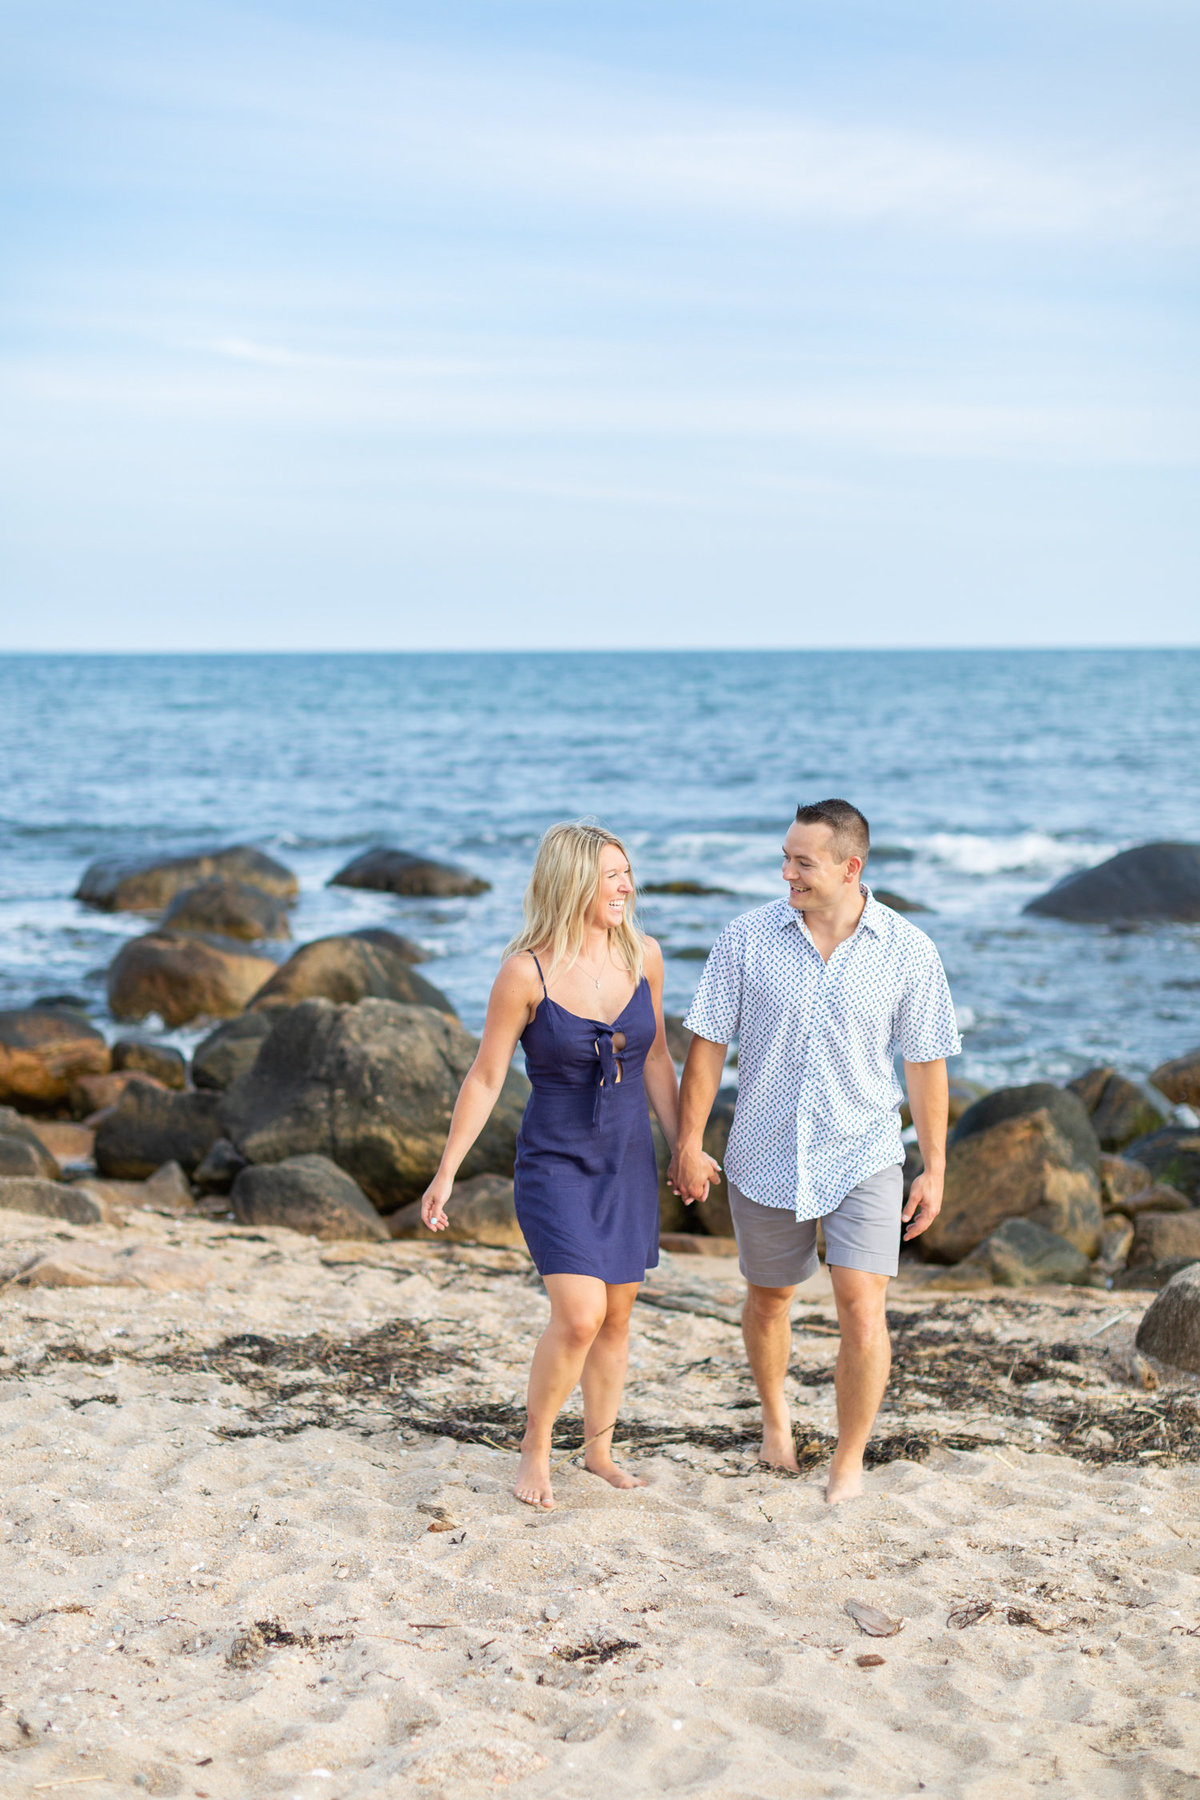 Laura-Klacik-Photography-Engagement-Photos-15-2